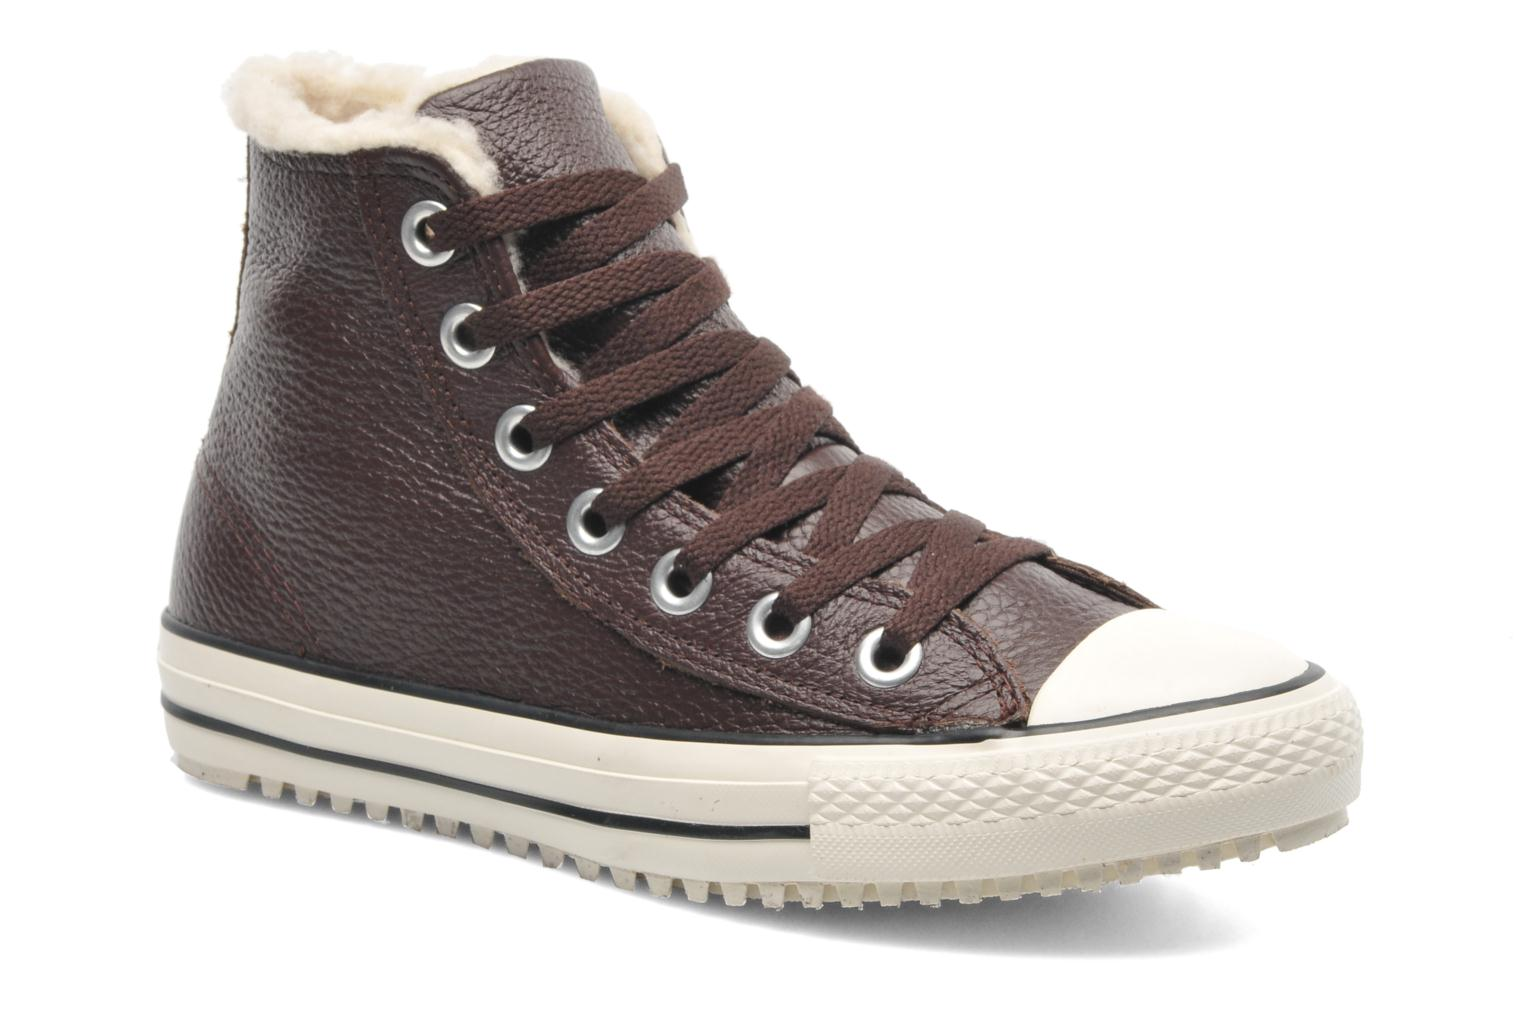 converse chuck taylor leather boot shearling hi w. Black Bedroom Furniture Sets. Home Design Ideas